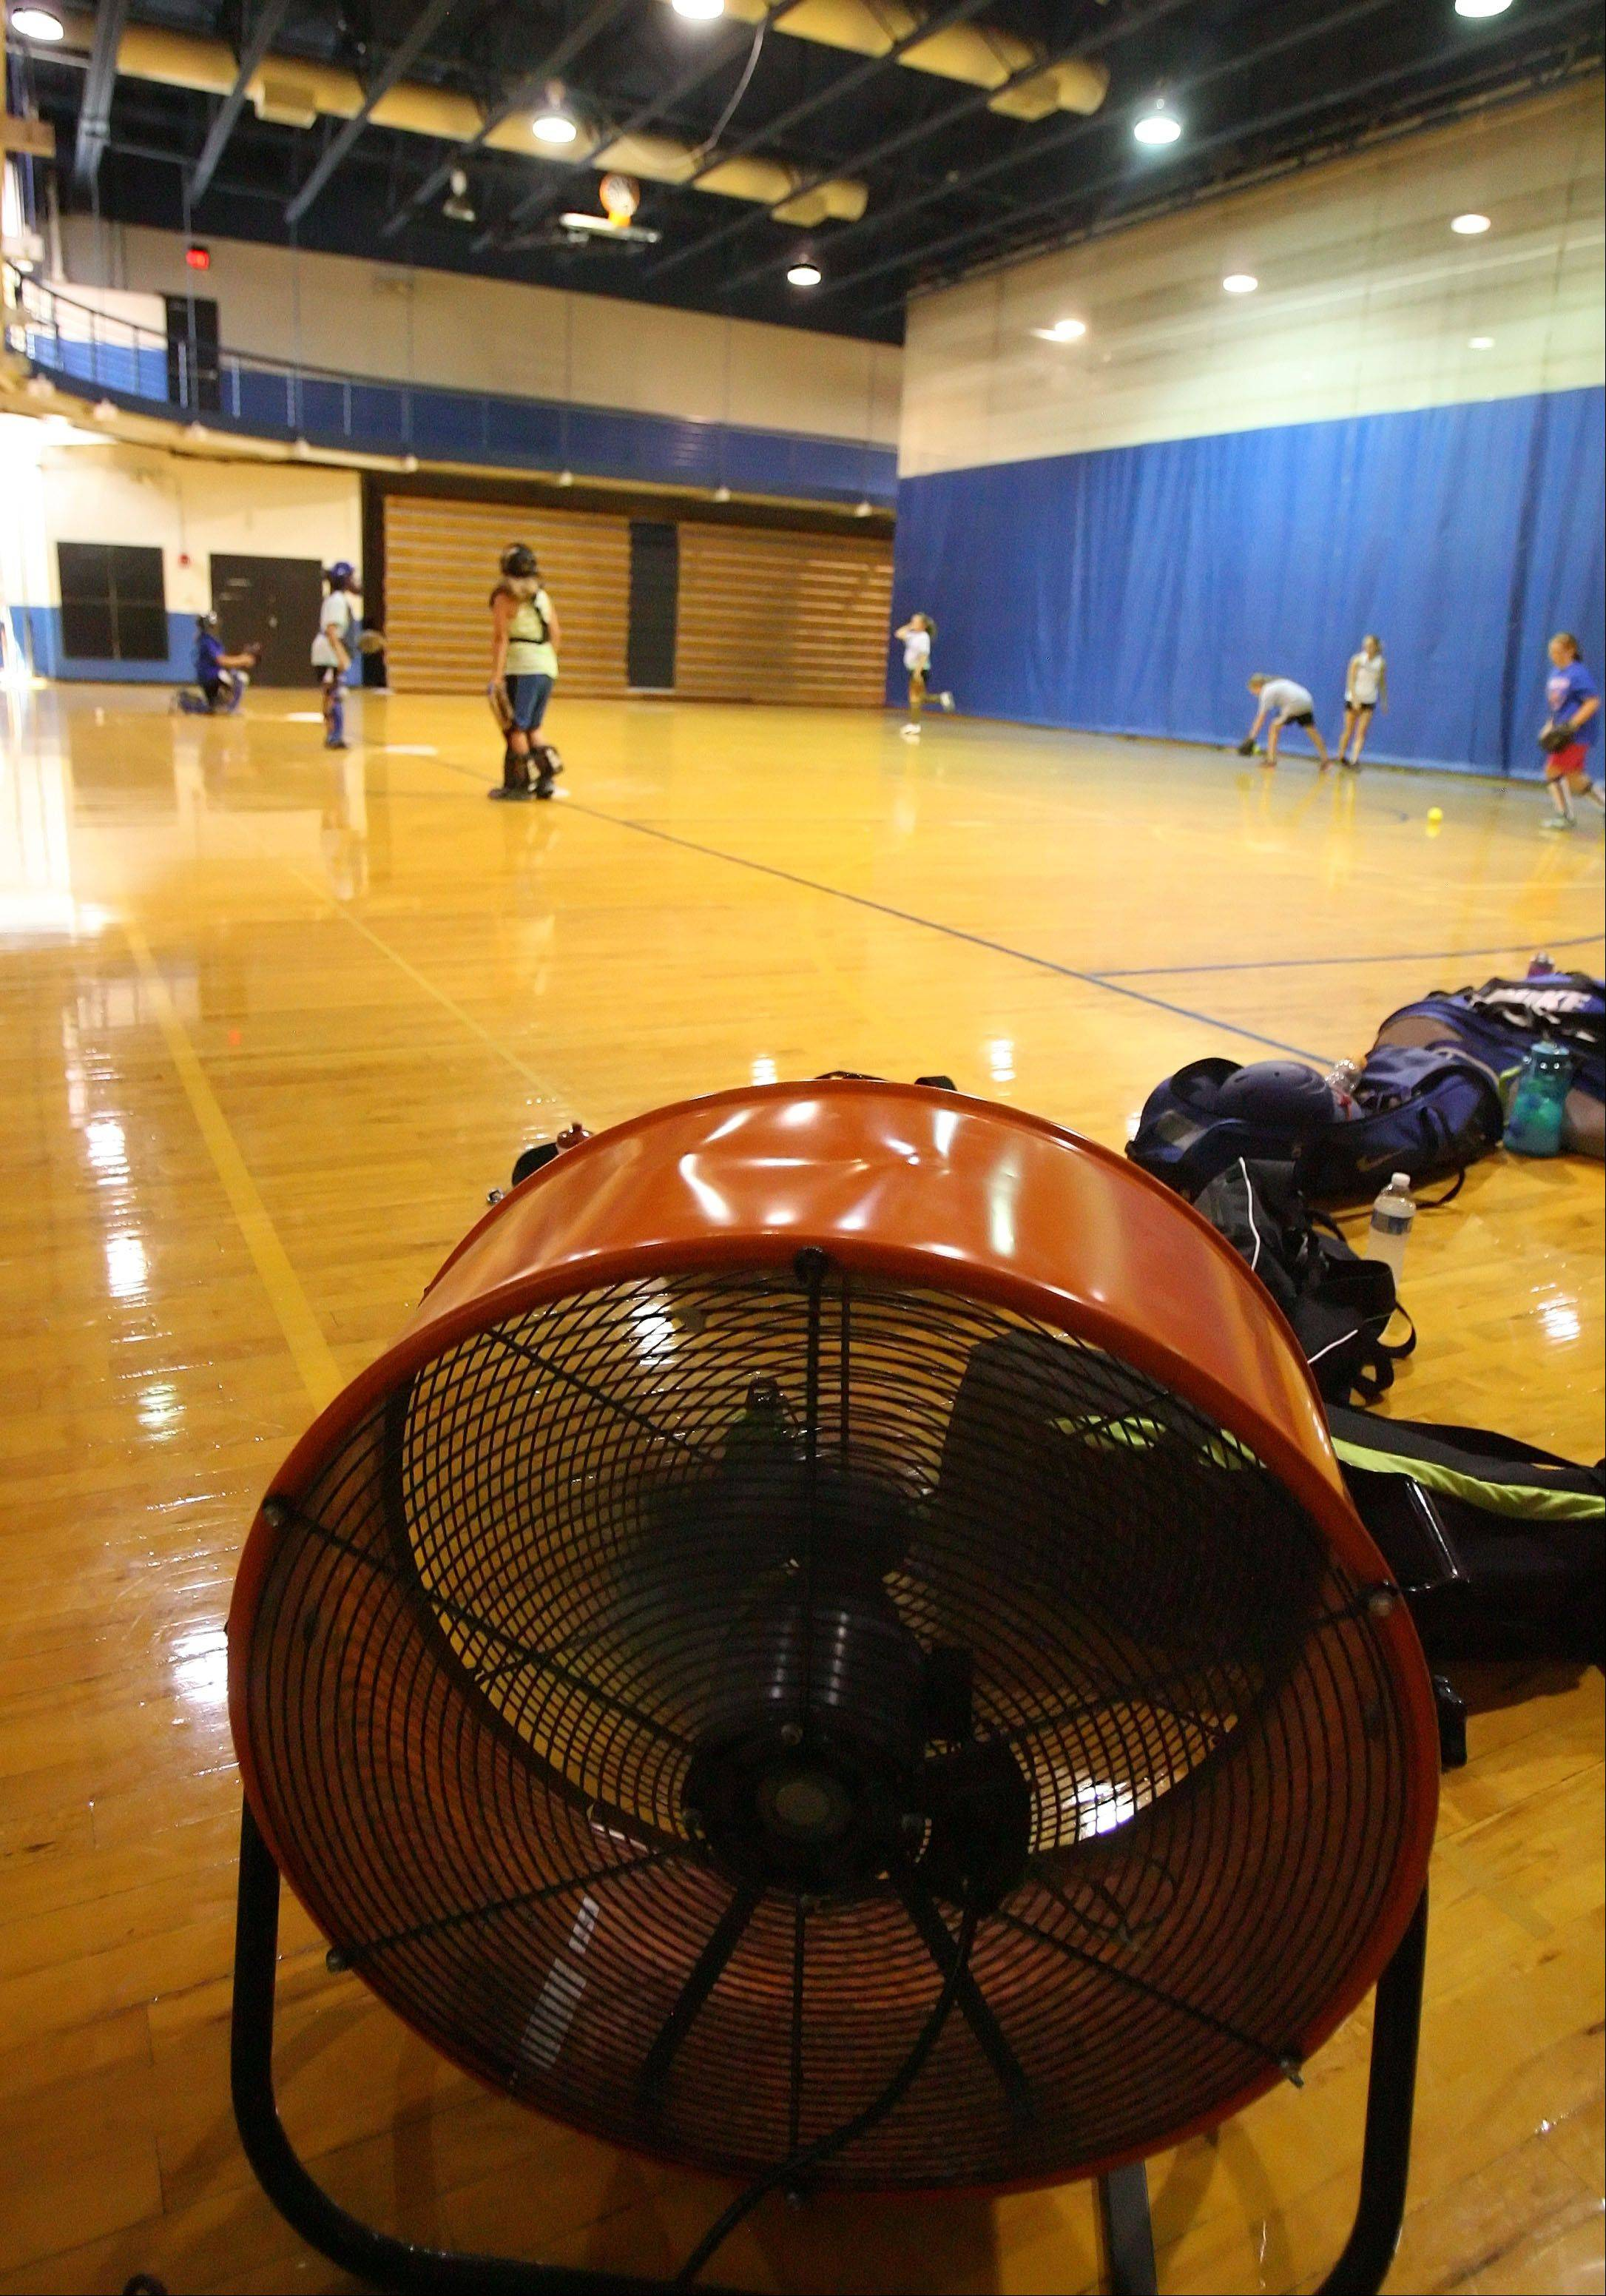 Fans cool the gym as the Lake Zurich High School softball camp went indoors to beat the heat Thursday.